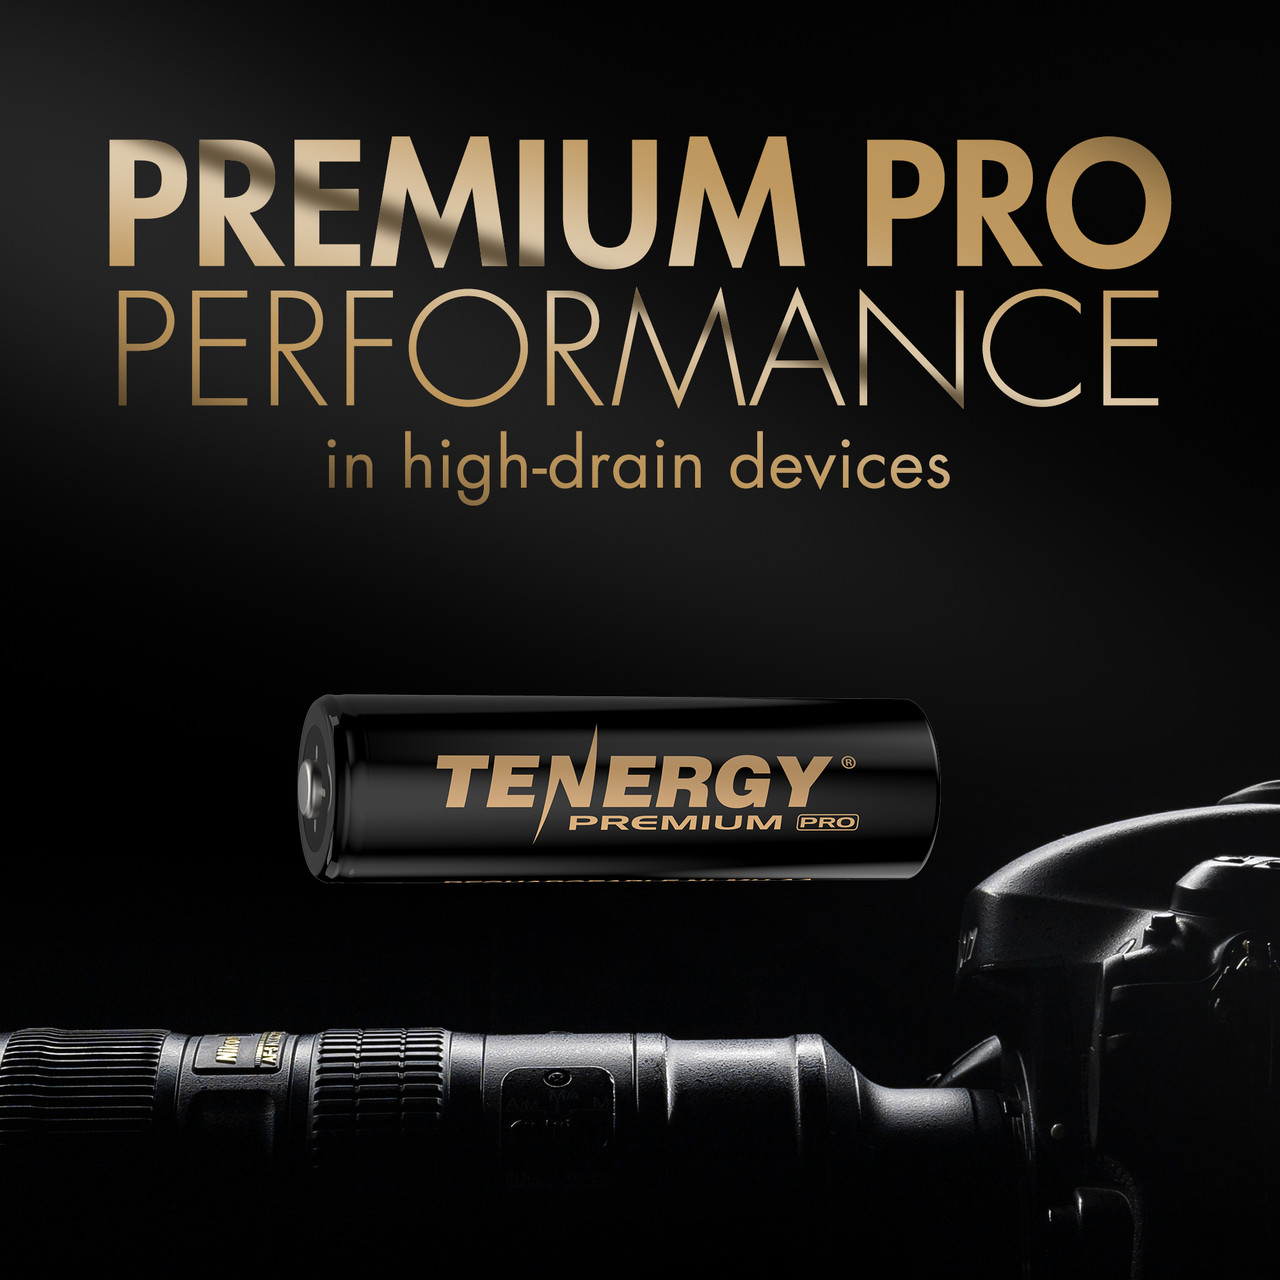 Tenergy Premium PRO Rechargeable AA Batteries, High Capacity Low Self-Discharge 2800mAh NiMH AA Battery, 20 Pack